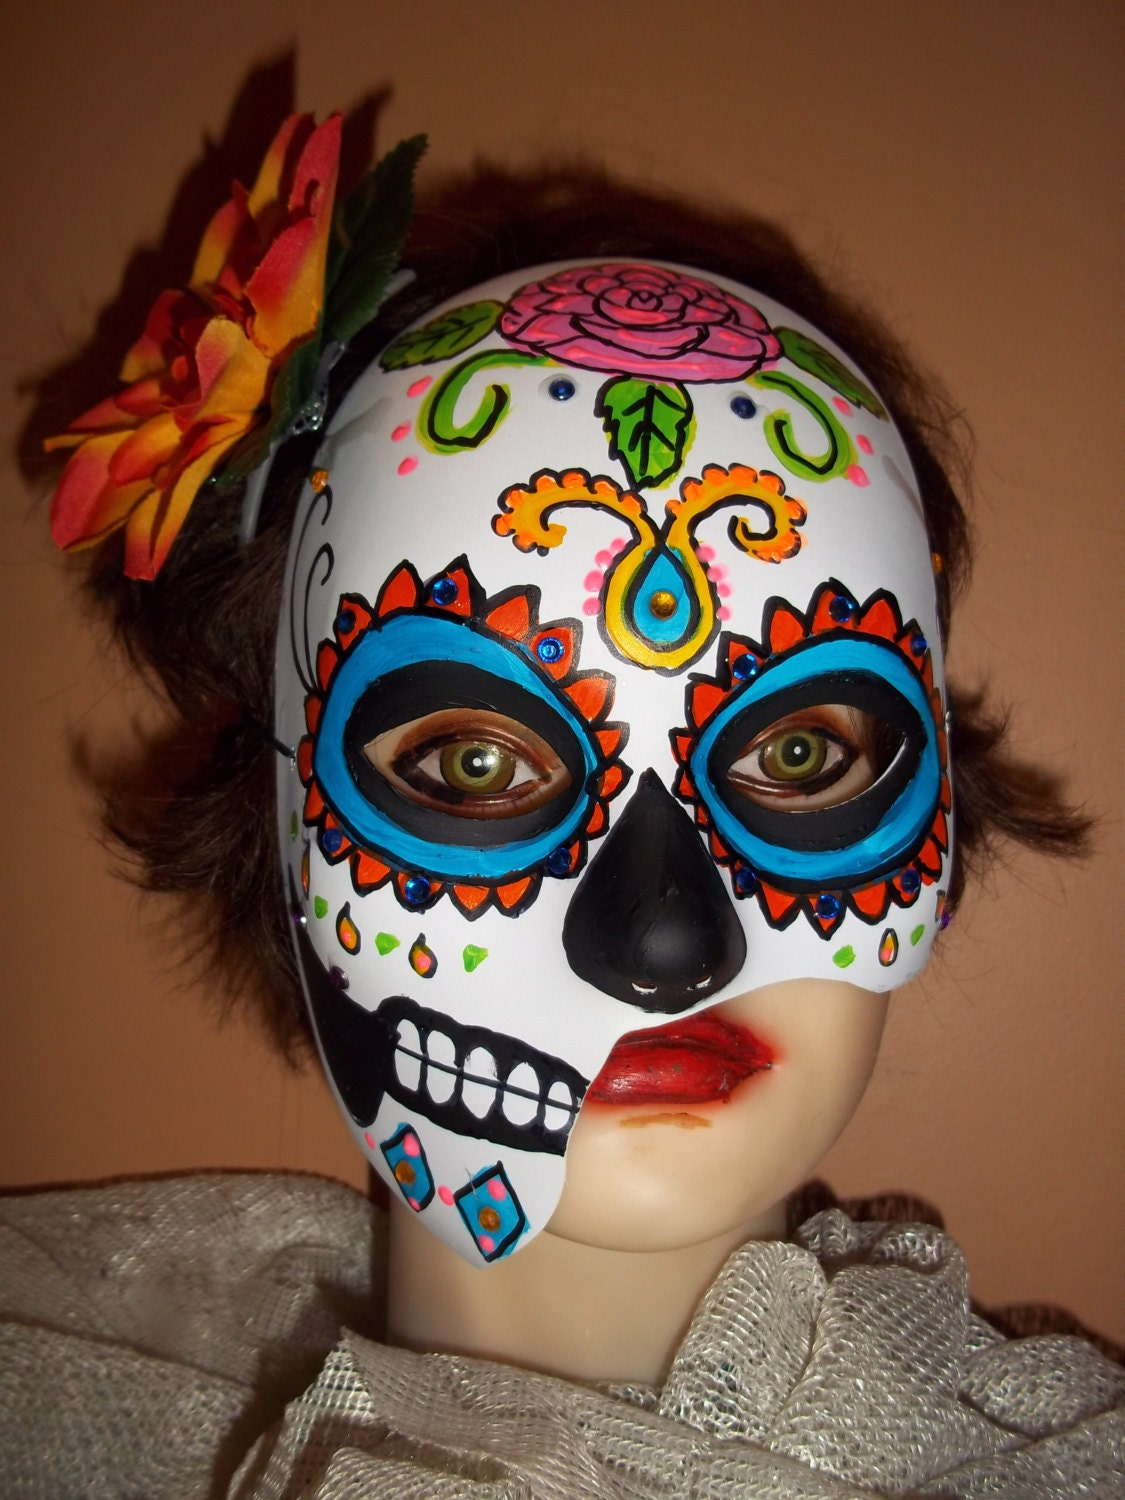 ... Day Of The Dead Mask , Day Of The Dead Mask Template , Day Of The Dead